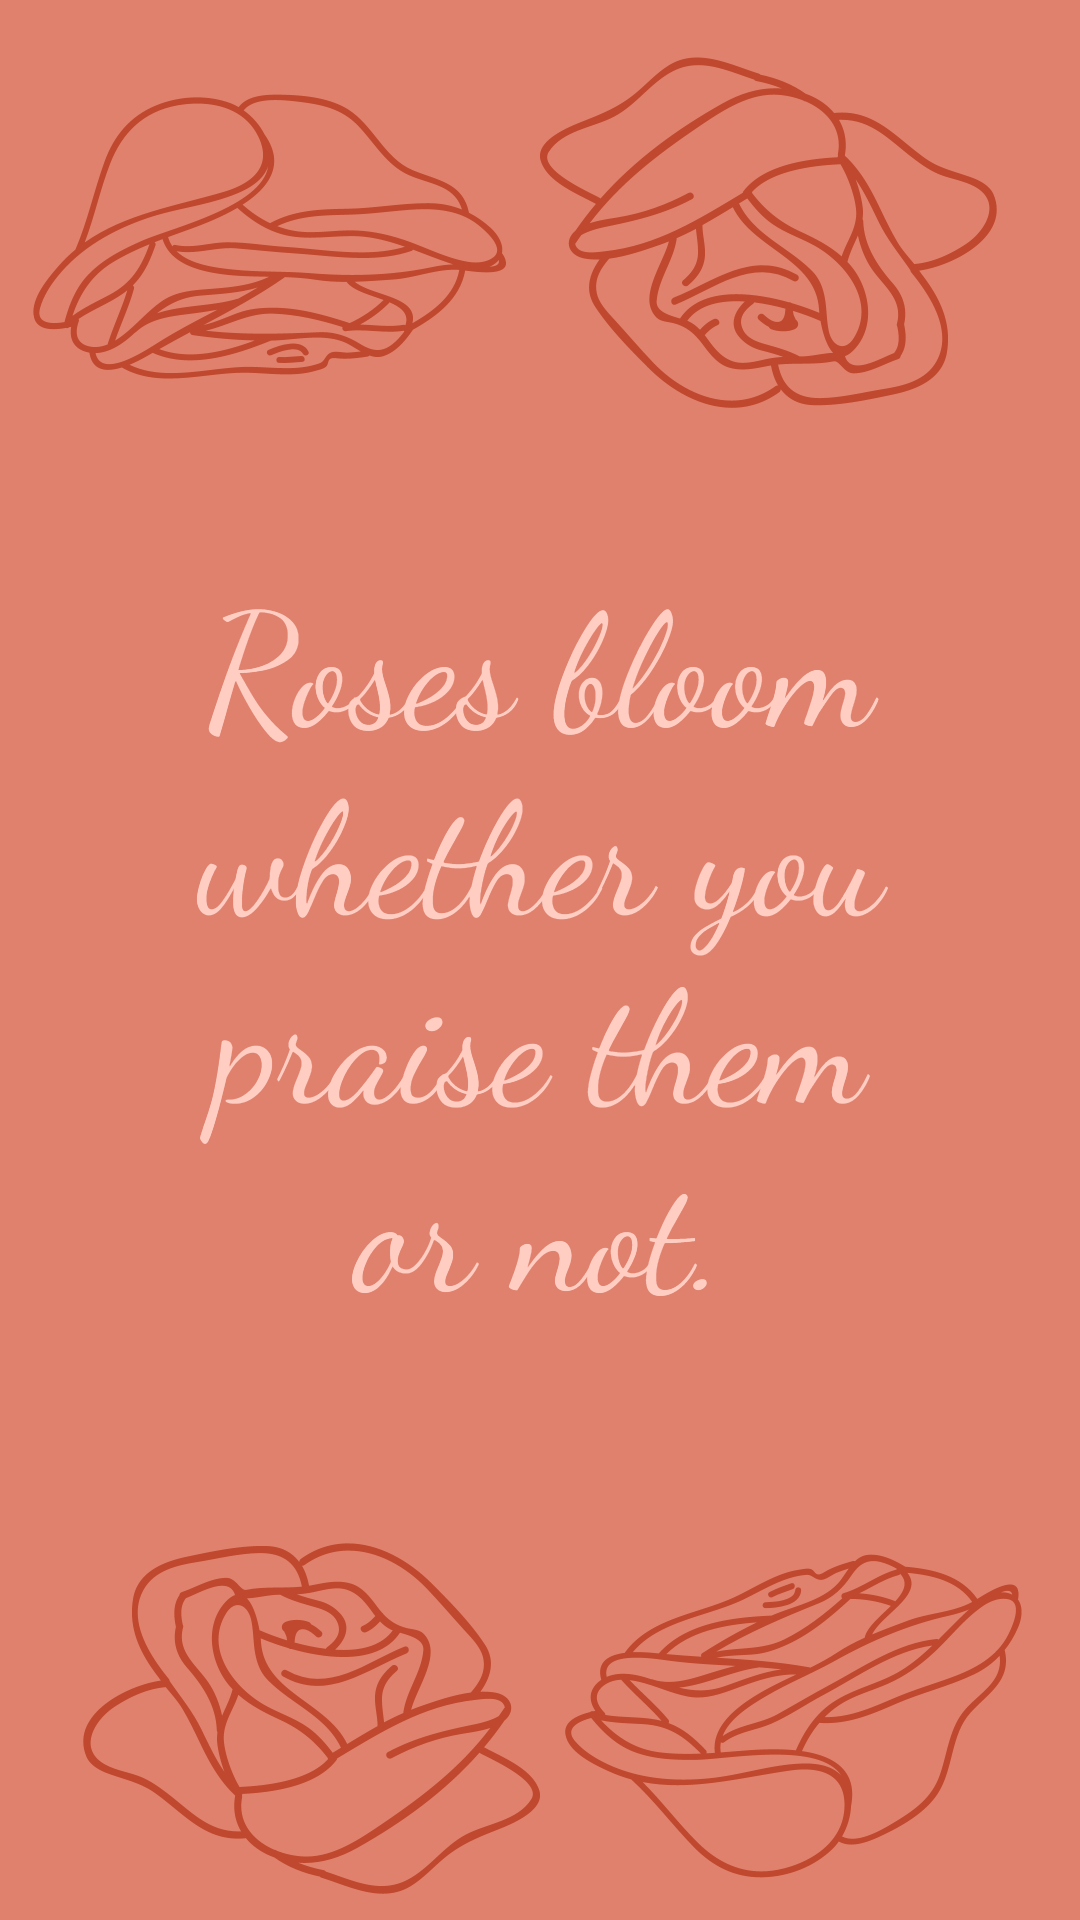 Roses bloom whether you praise them or not